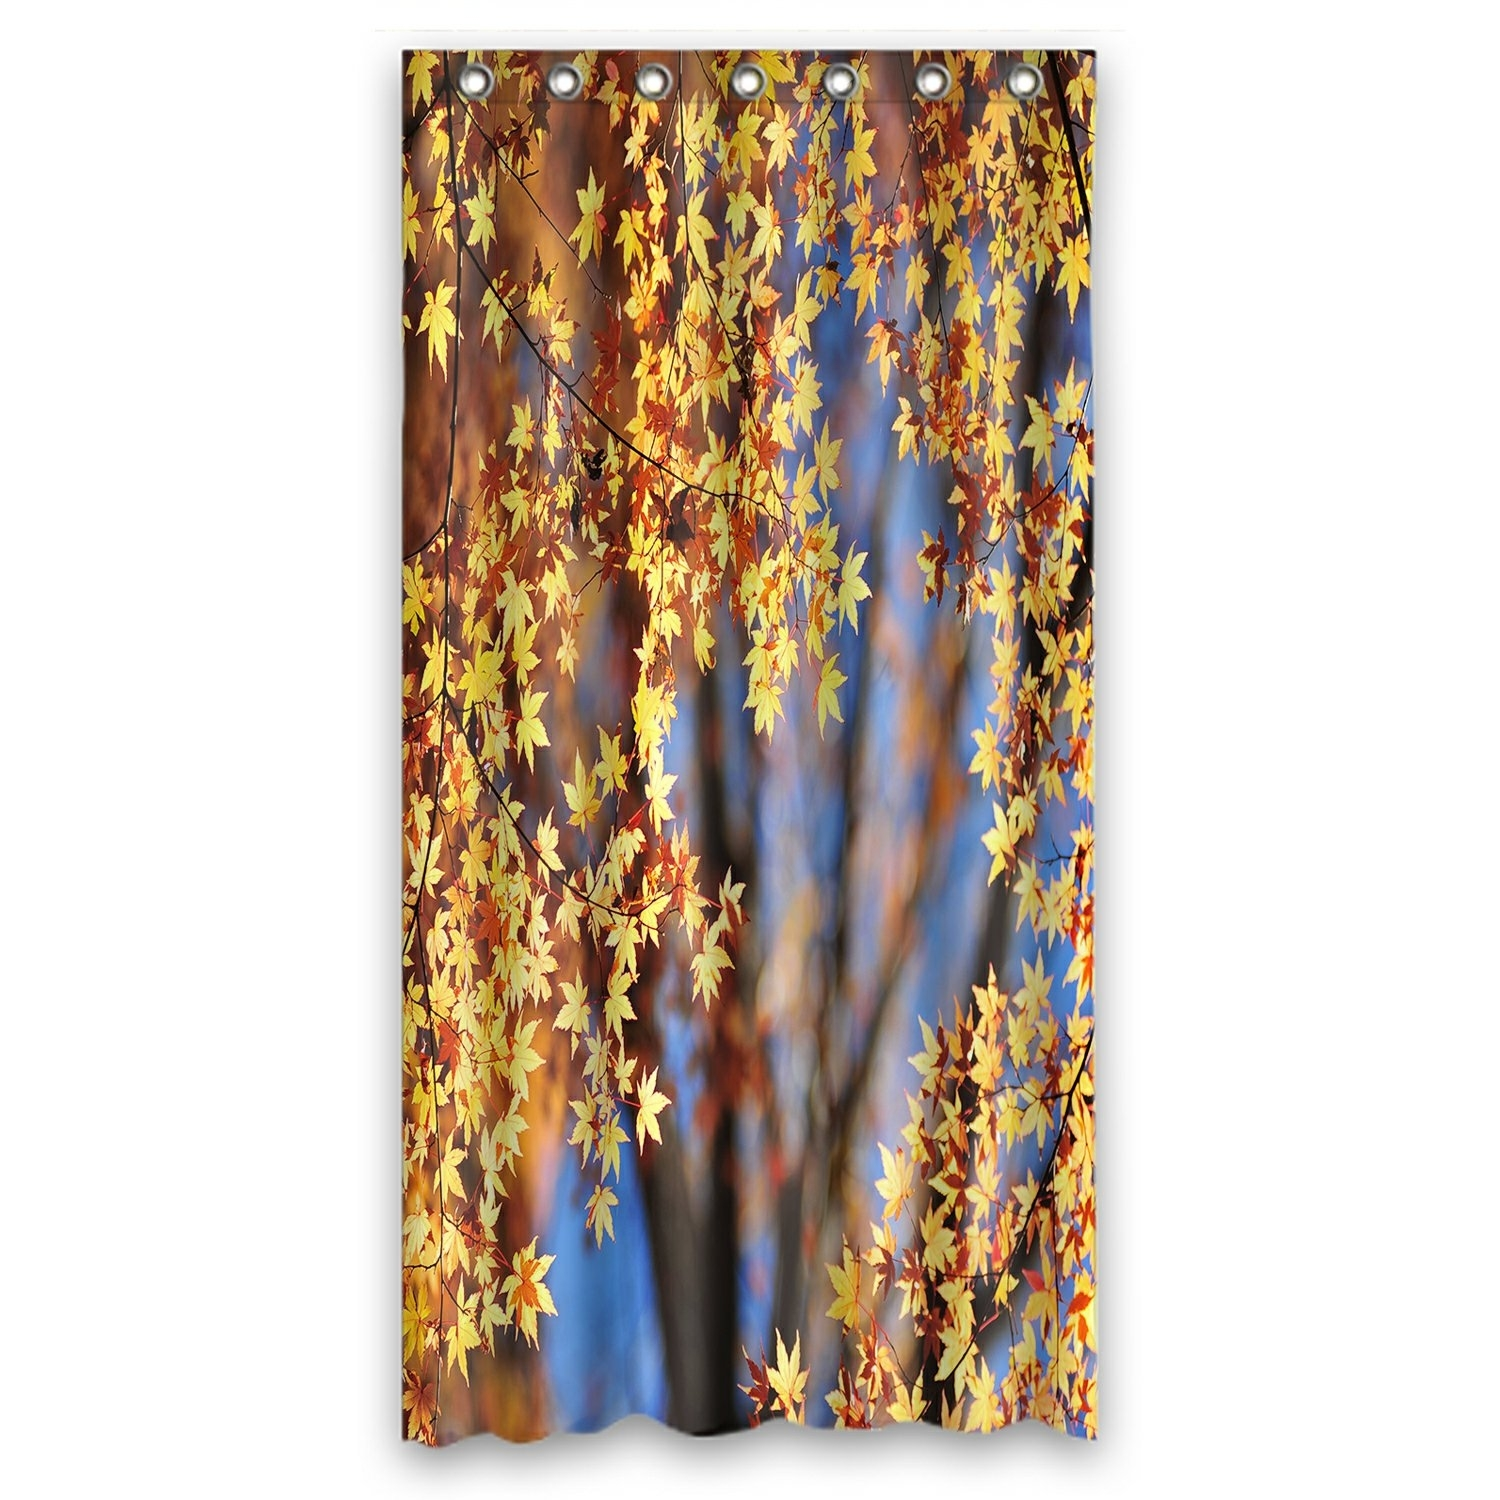 Landscape Shower Curtain, Autumn Maple Leaves Shower Curtain 36x72 inch